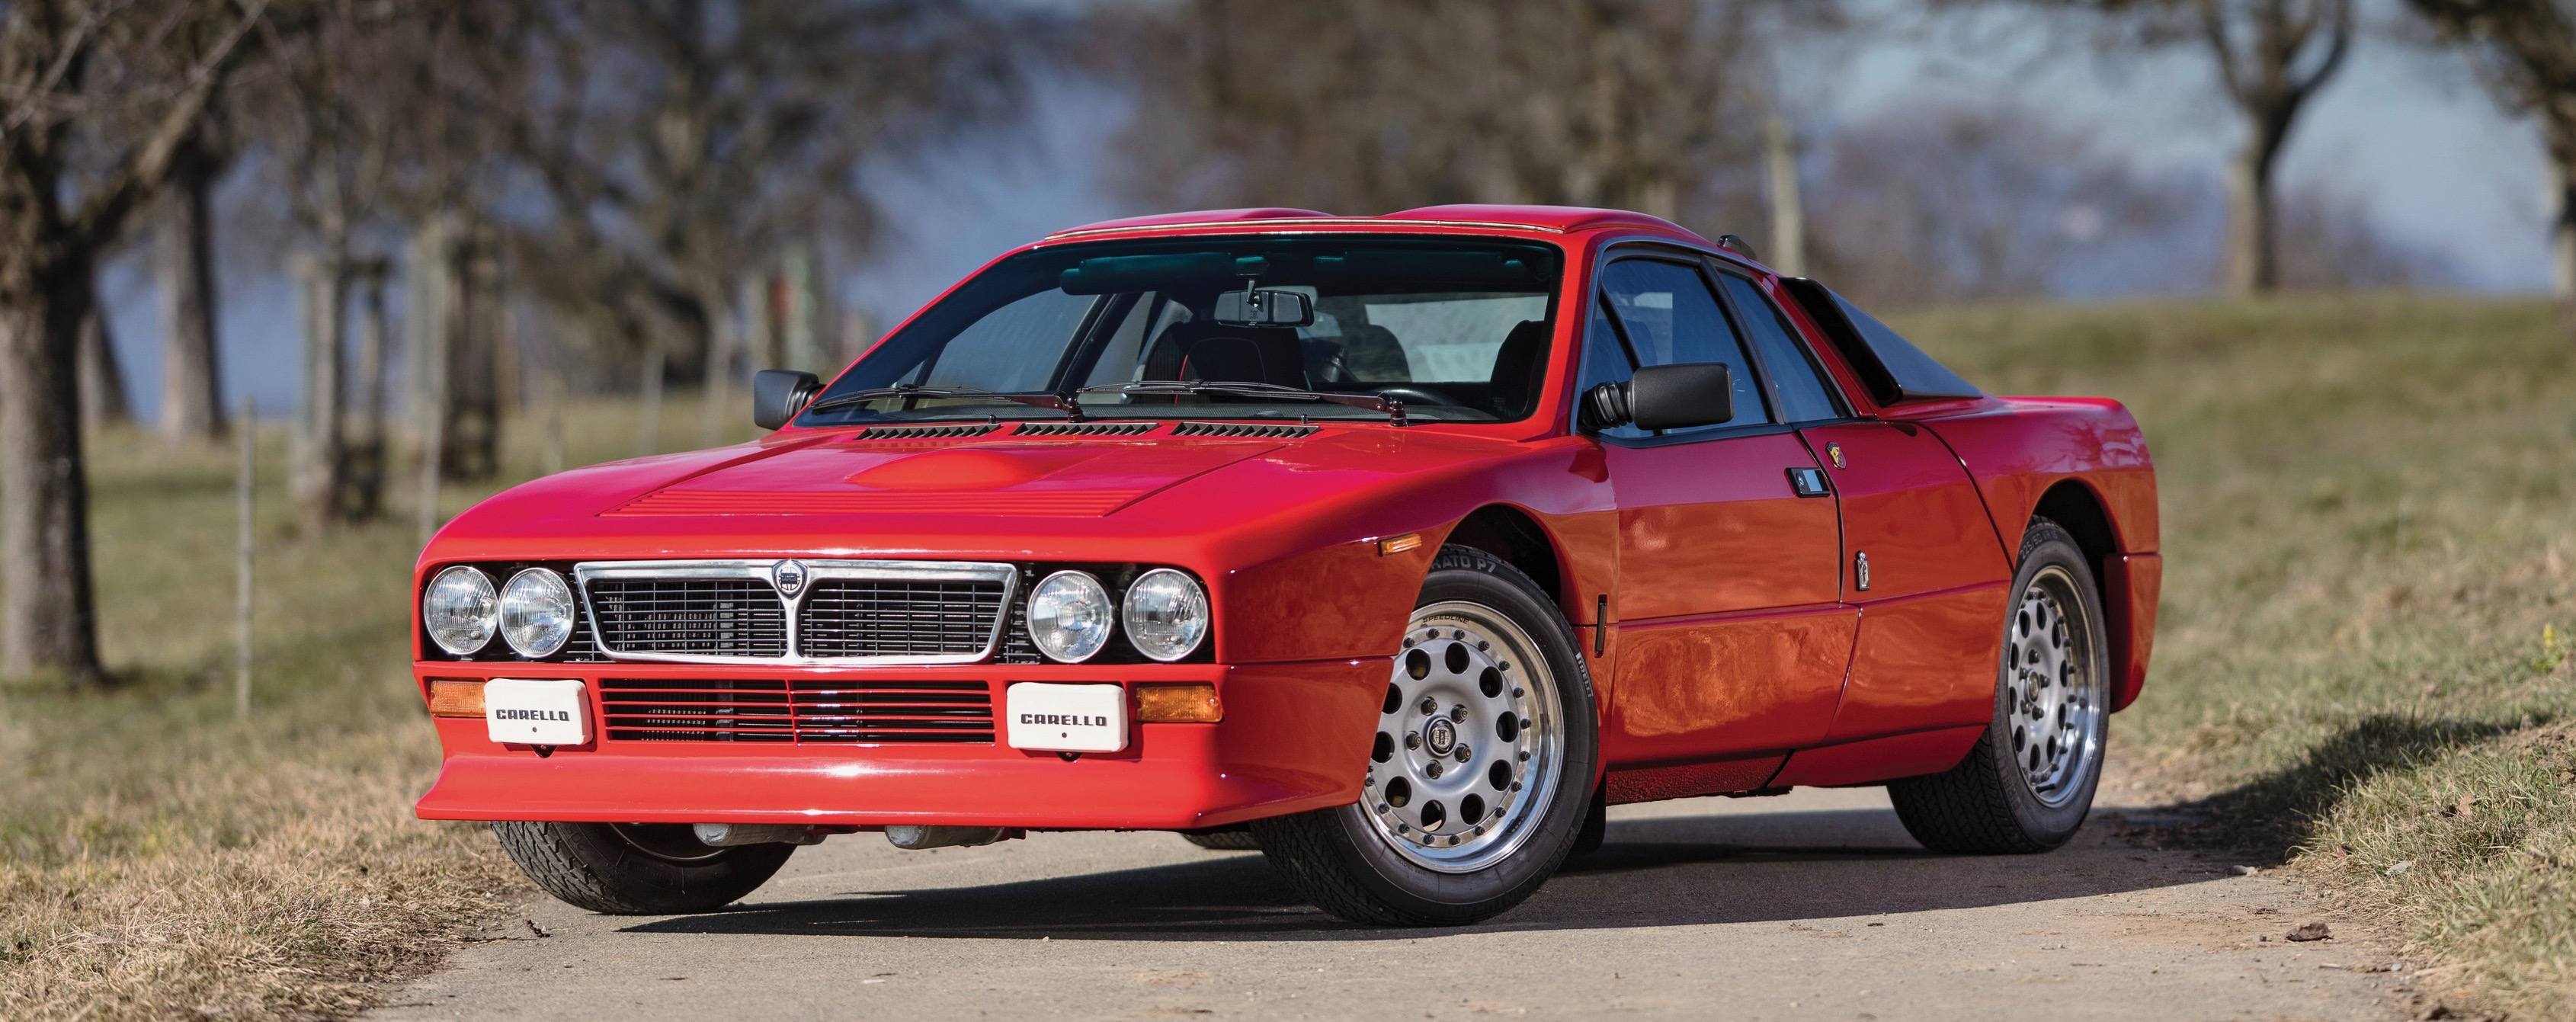 Lancia, Rally-bred Lancias spice RM Sotheby's Essen docket, ClassicCars.com Journal